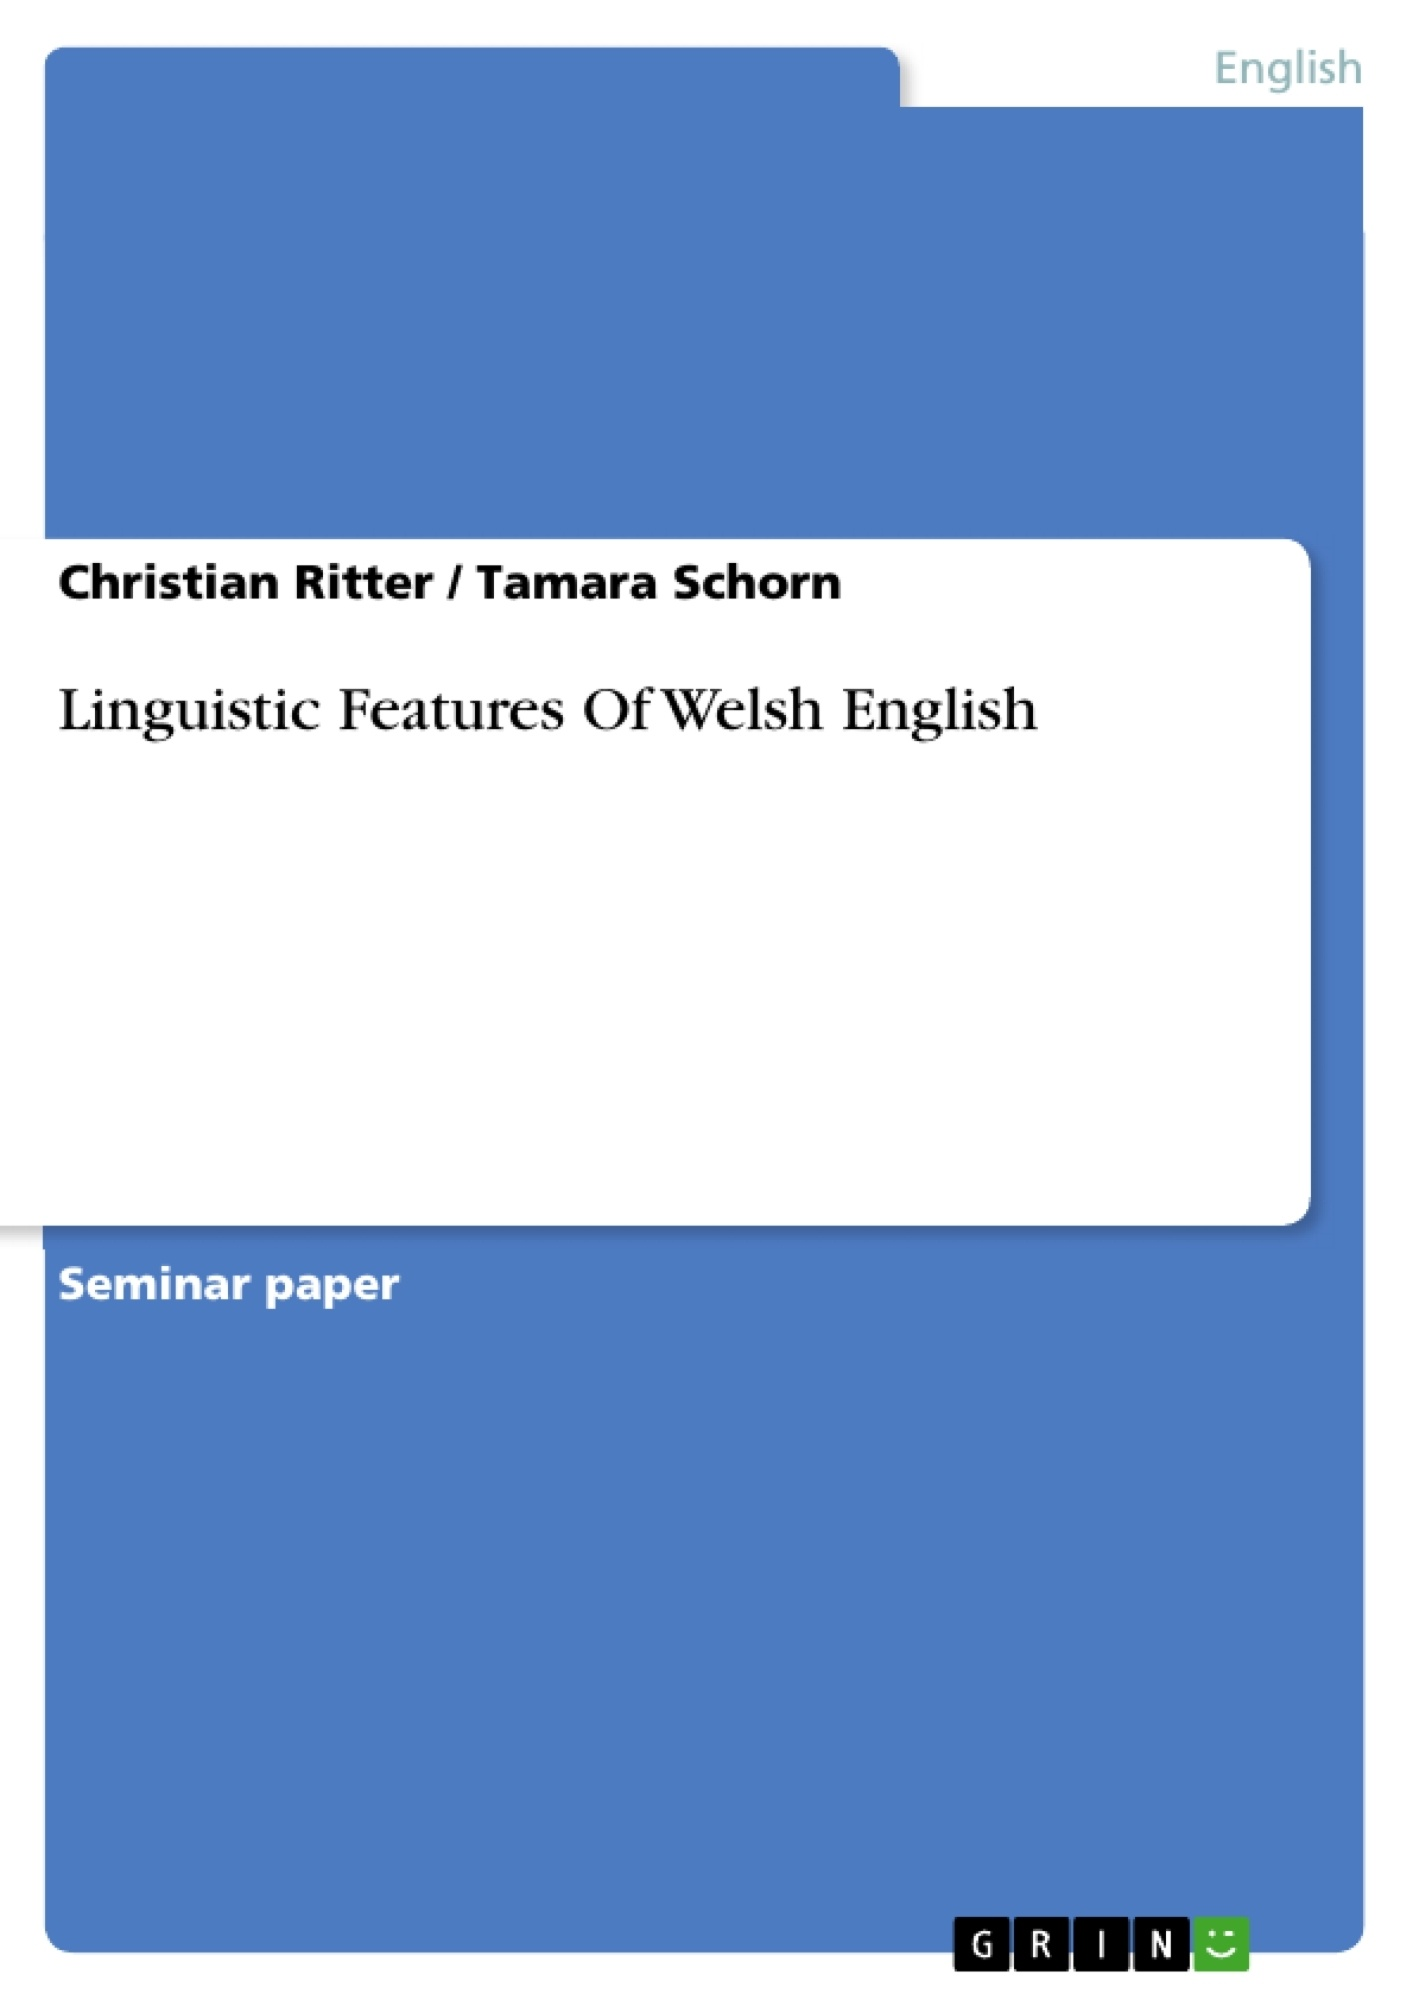 Title: Linguistic Features Of Welsh English